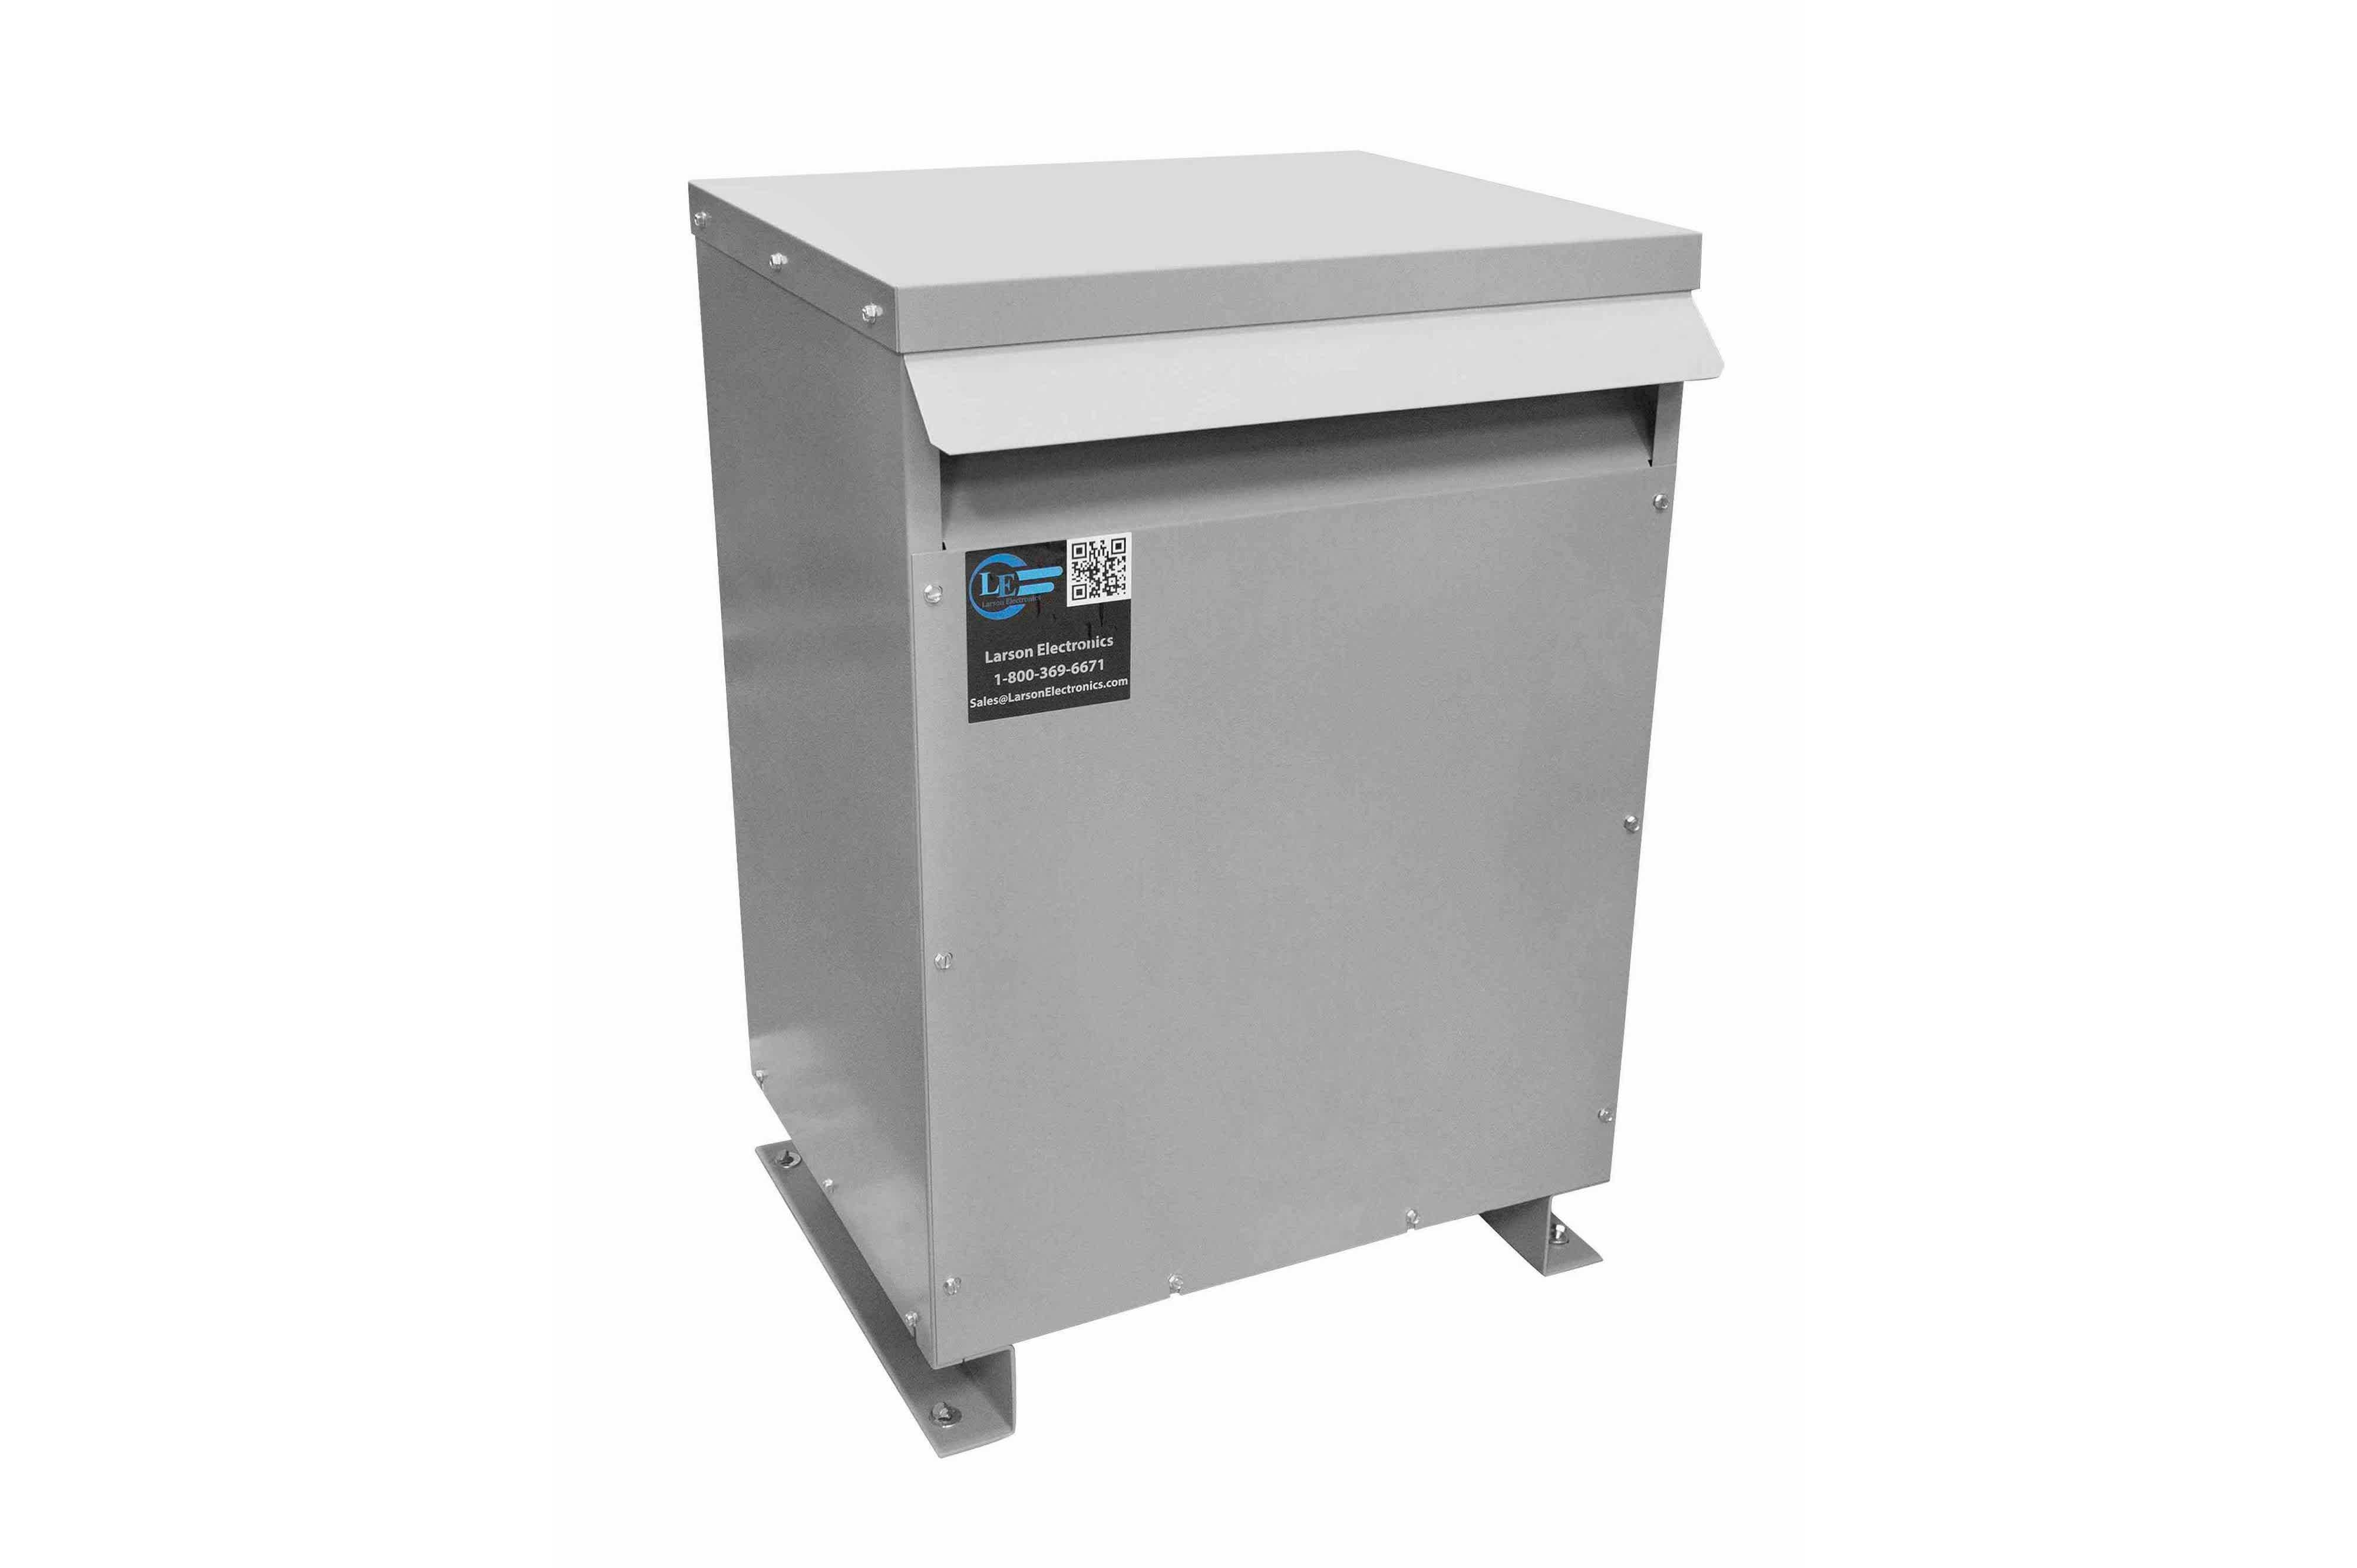 45 kVA 3PH Isolation Transformer, 600V Delta Primary, 415V Delta Secondary, N3R, Ventilated, 60 Hz